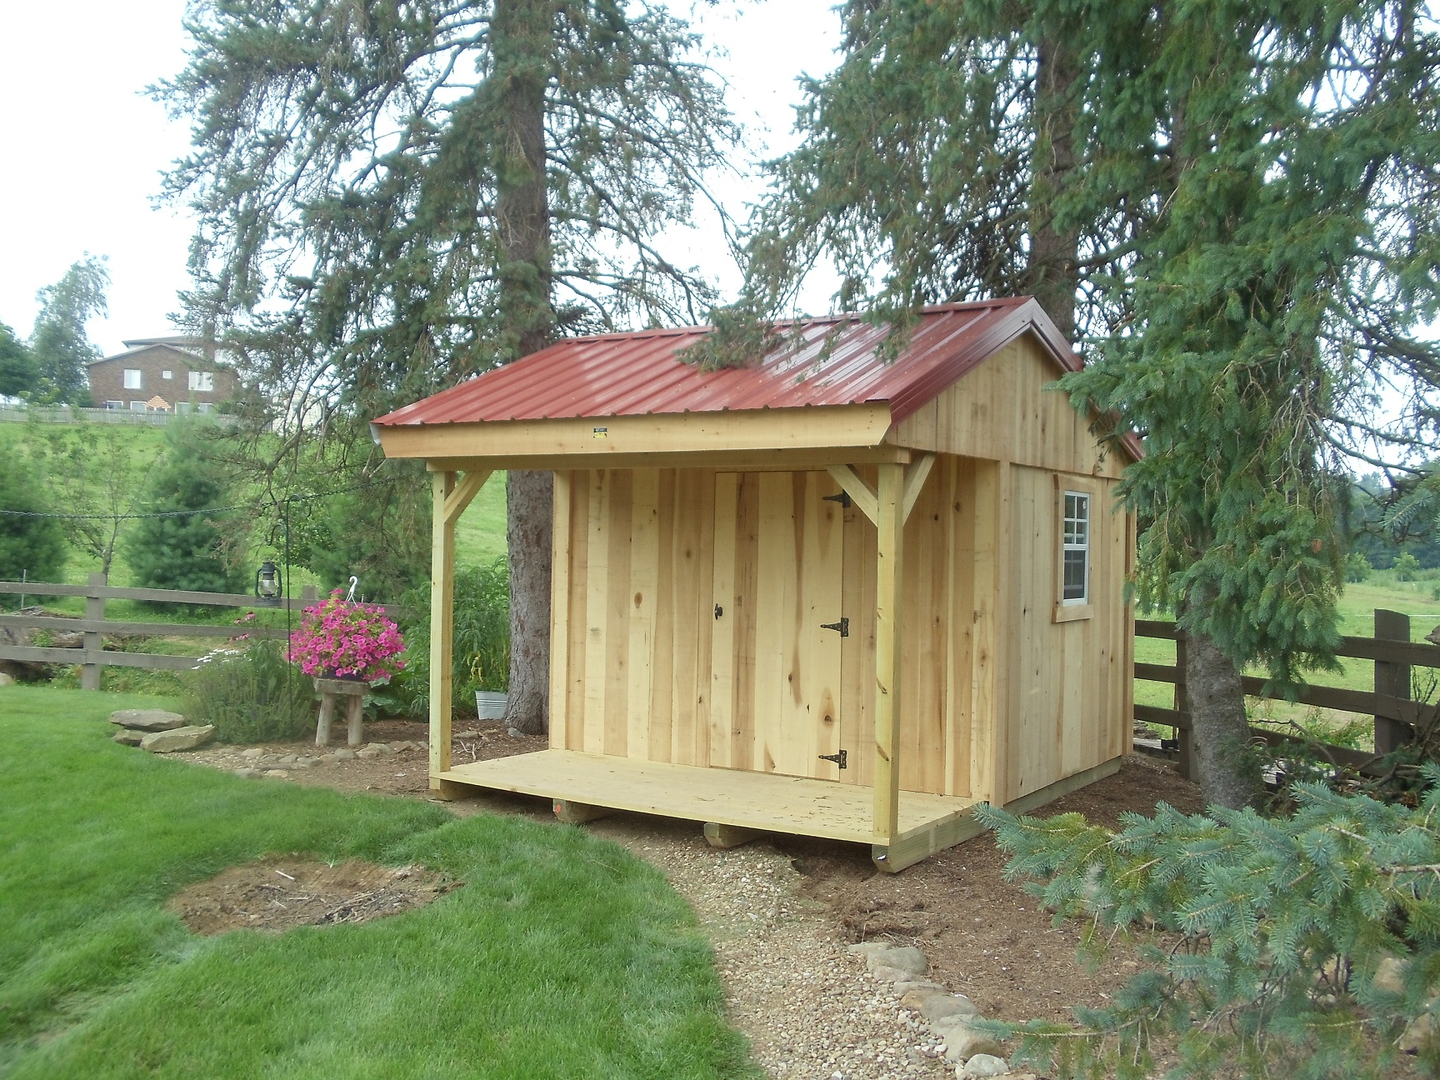 8x10 garden shed with 4 porch